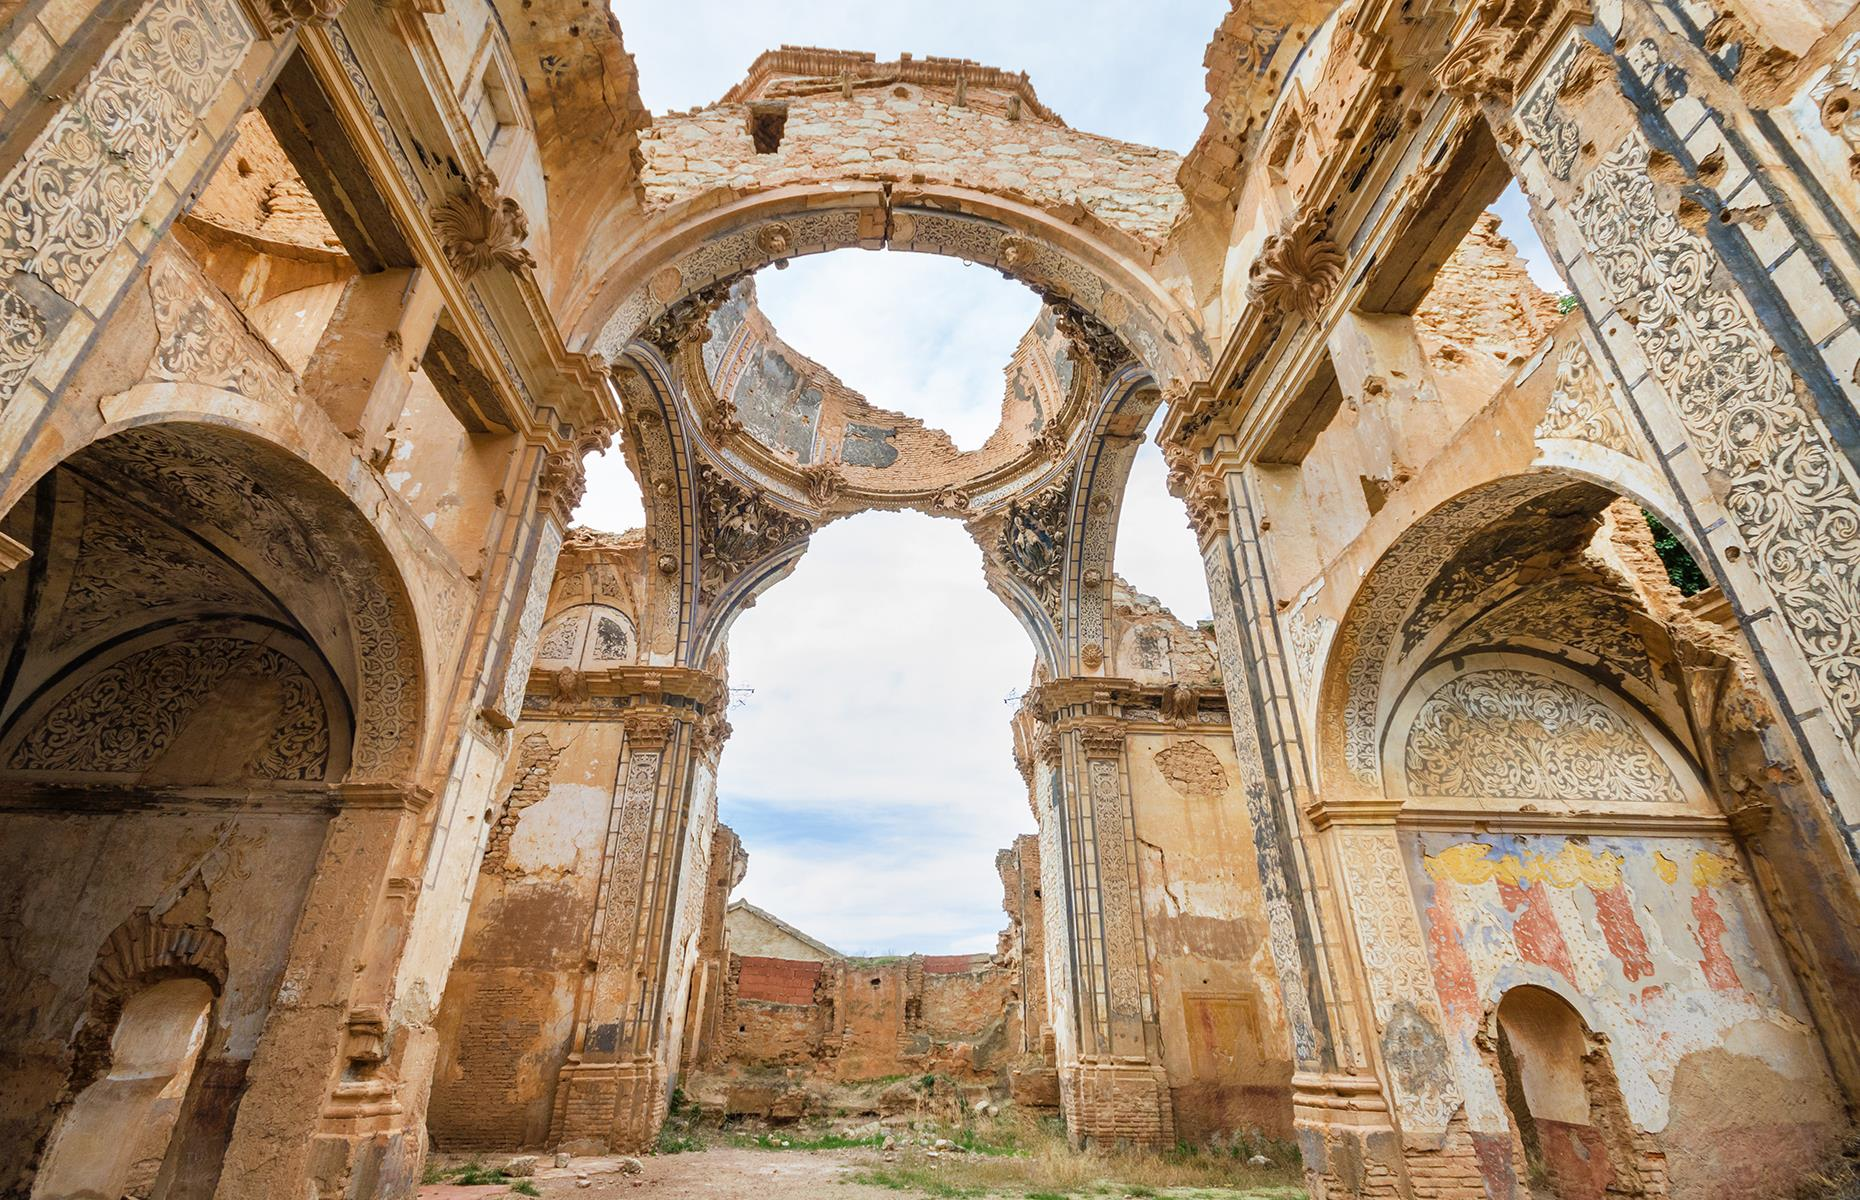 Slide 20 of 68: Located near Zaragoza in the northeast of Spain, Belchite was almost completely destroyed 80 years ago during one of the bloodiest battles of the Spanish Civil War. After the war, it was decided the town should be left untouched and abandoned as a memorial to the 3,000 people who were killed there.